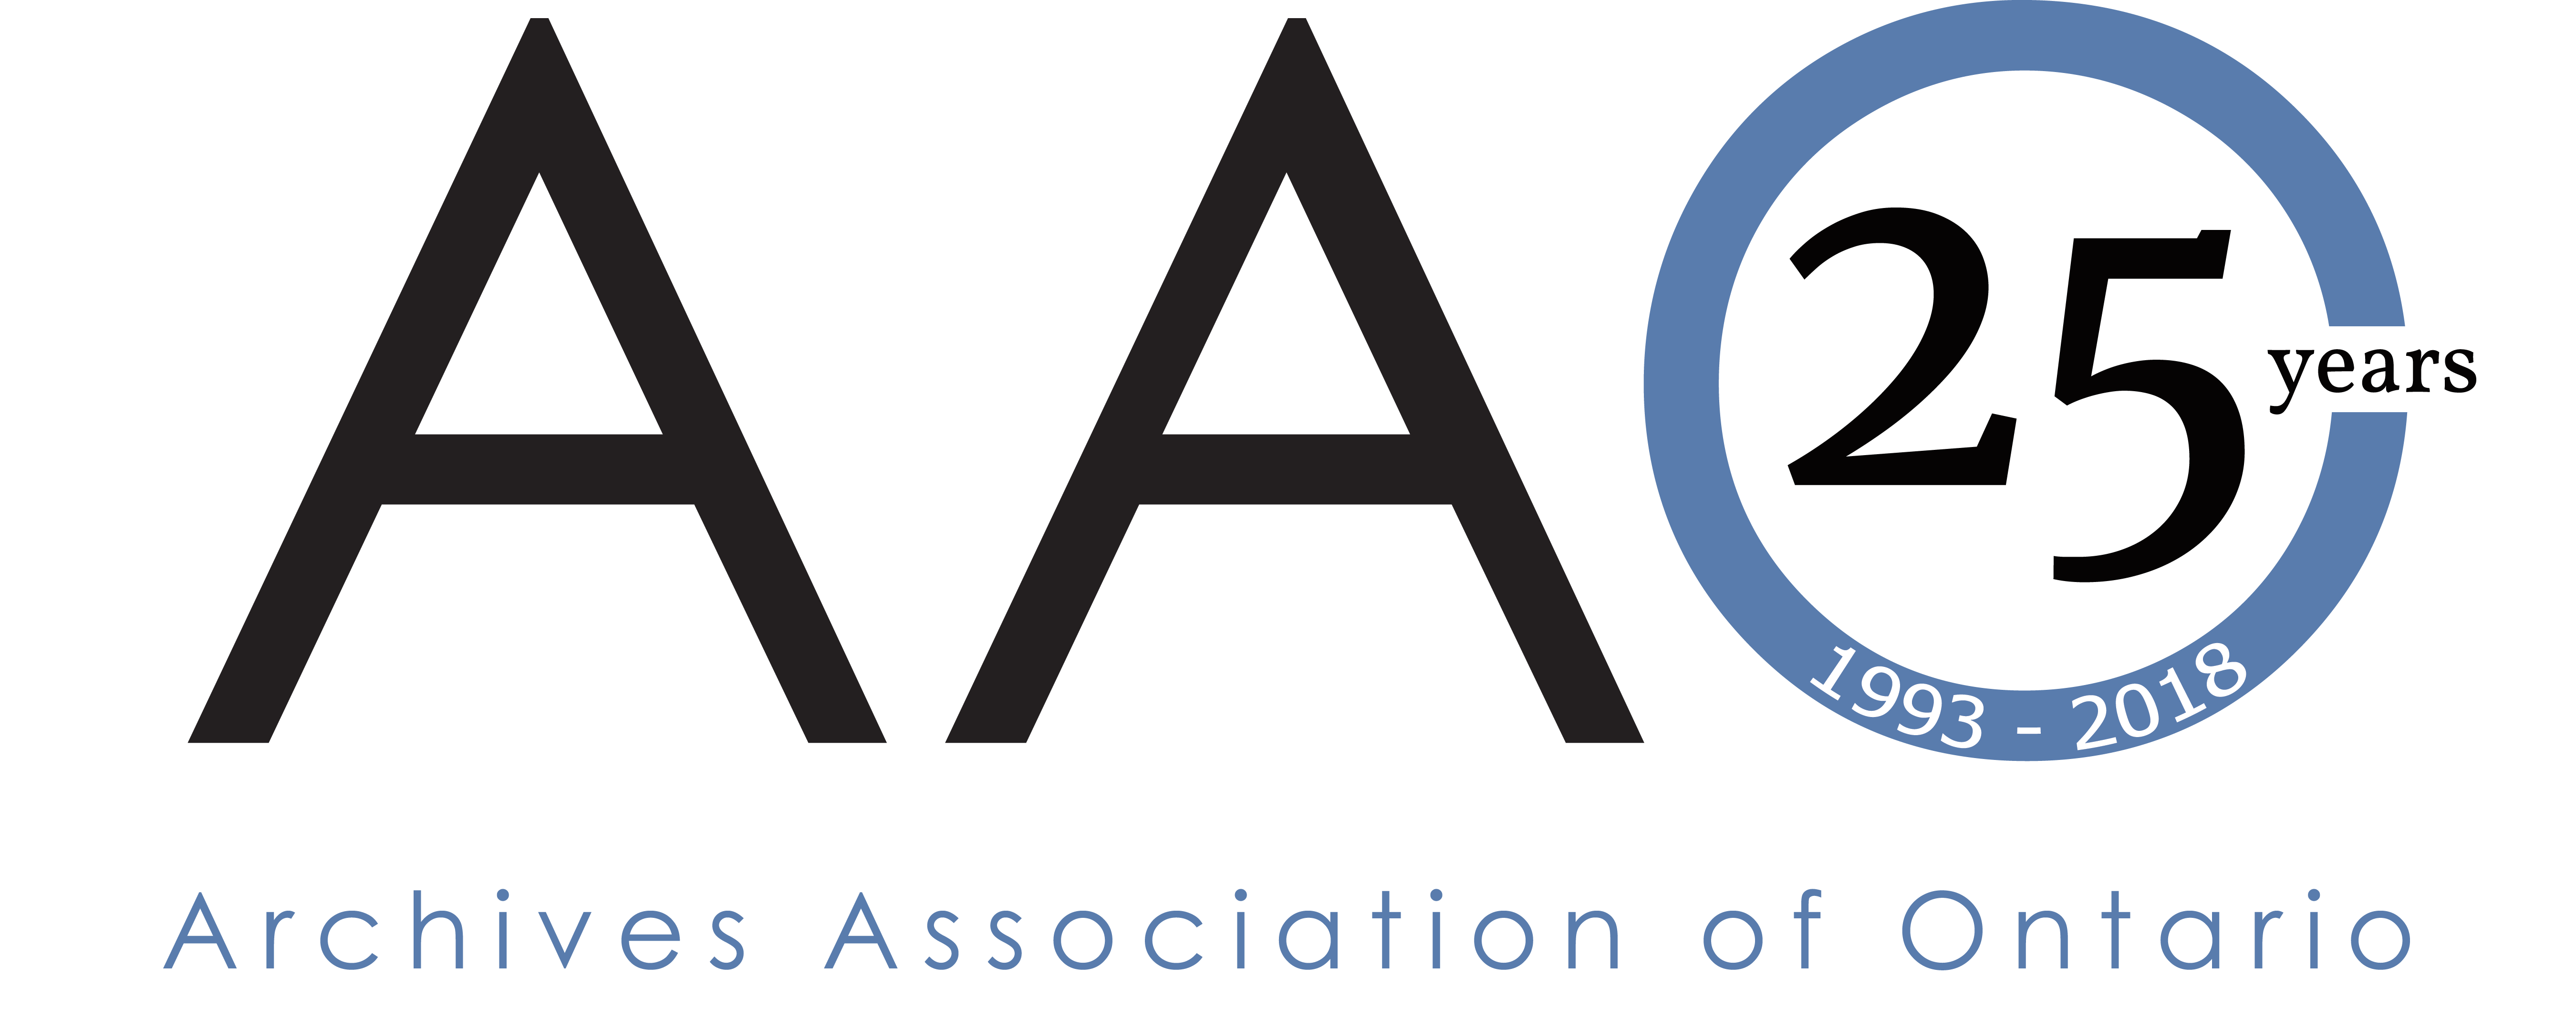 Archives Association Of Ontario Getting Down With Copyright